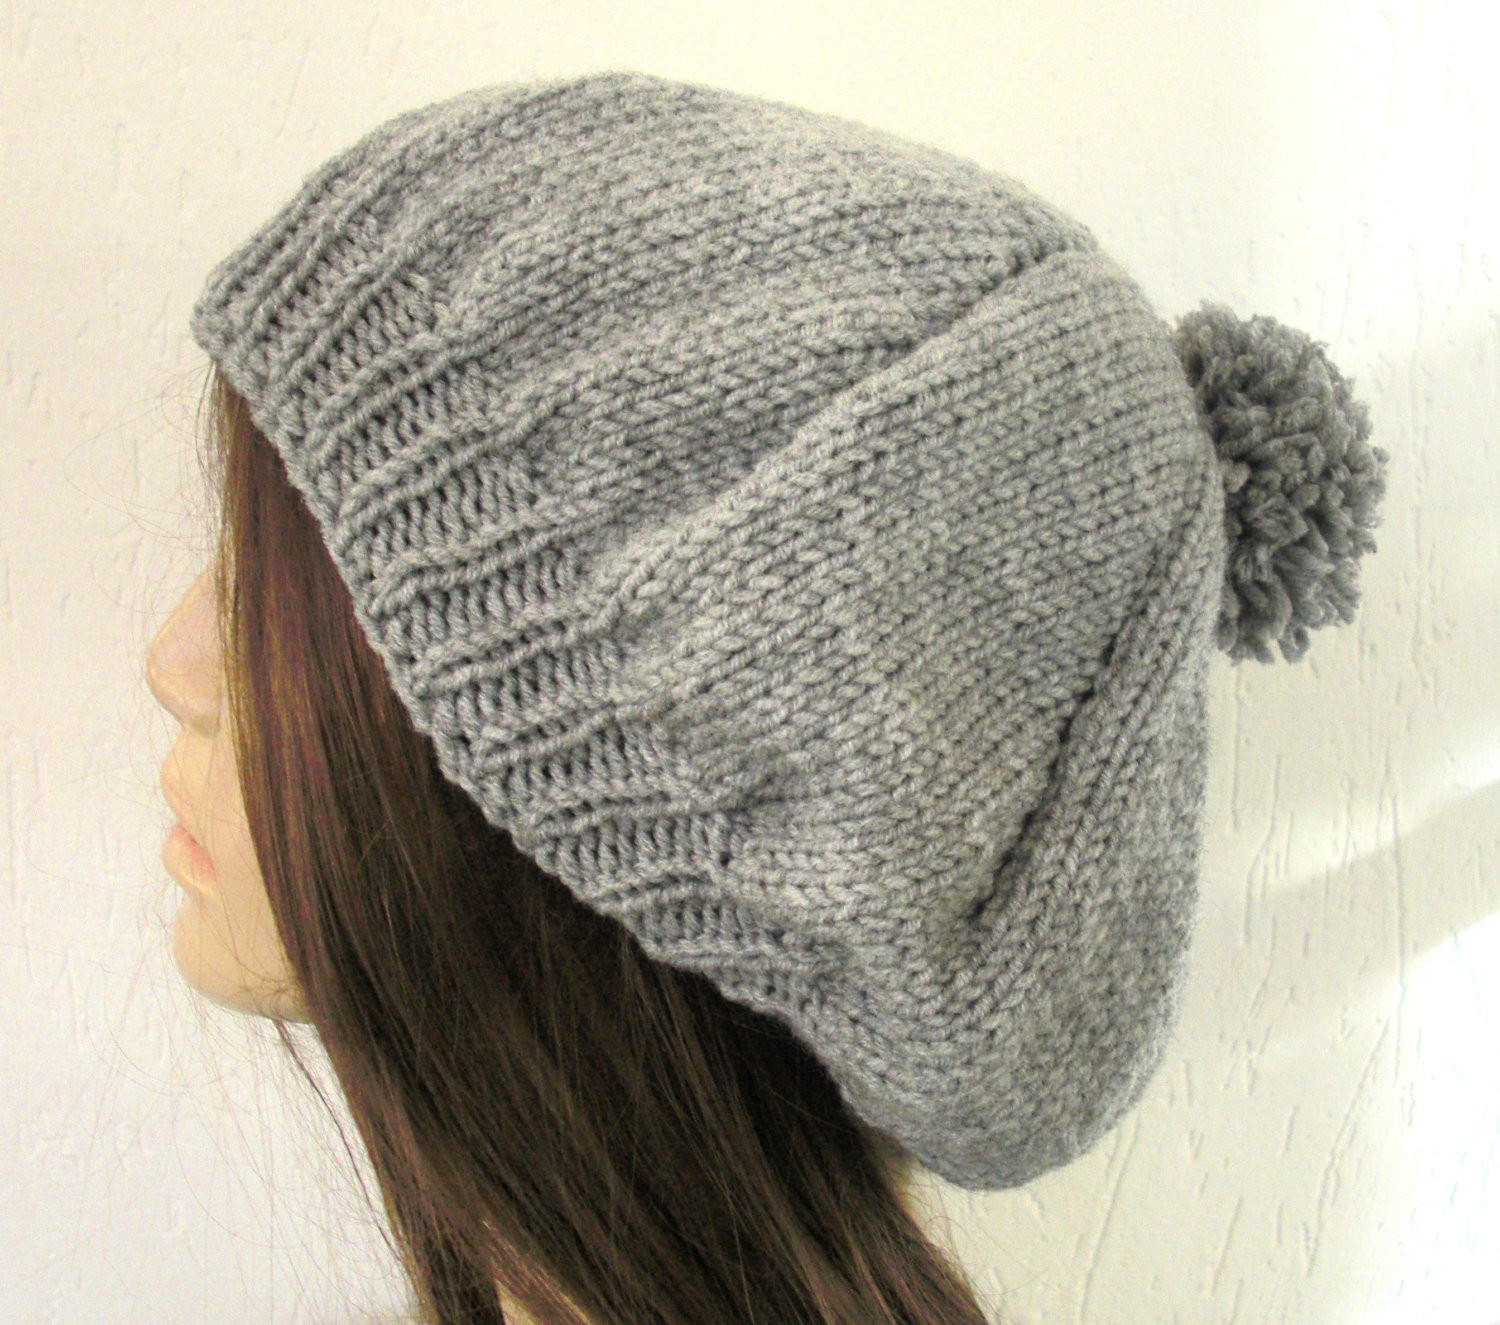 Knitting Patterns For Hats : Knit Hat Patterns for Women A Knitting Blog